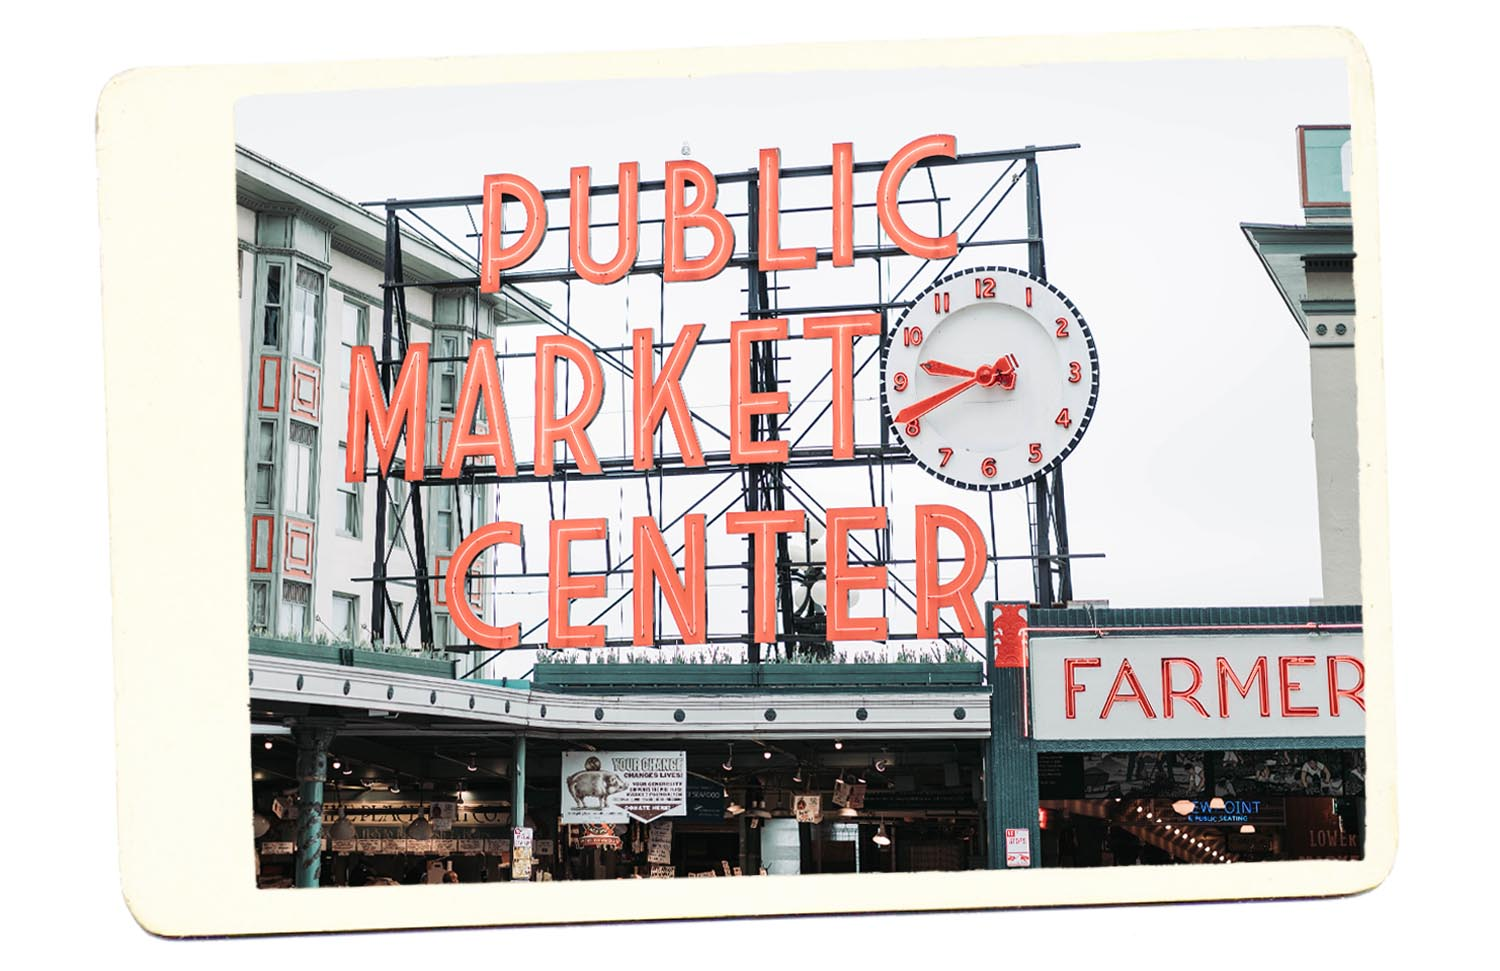 Seattle Public Market Log Center